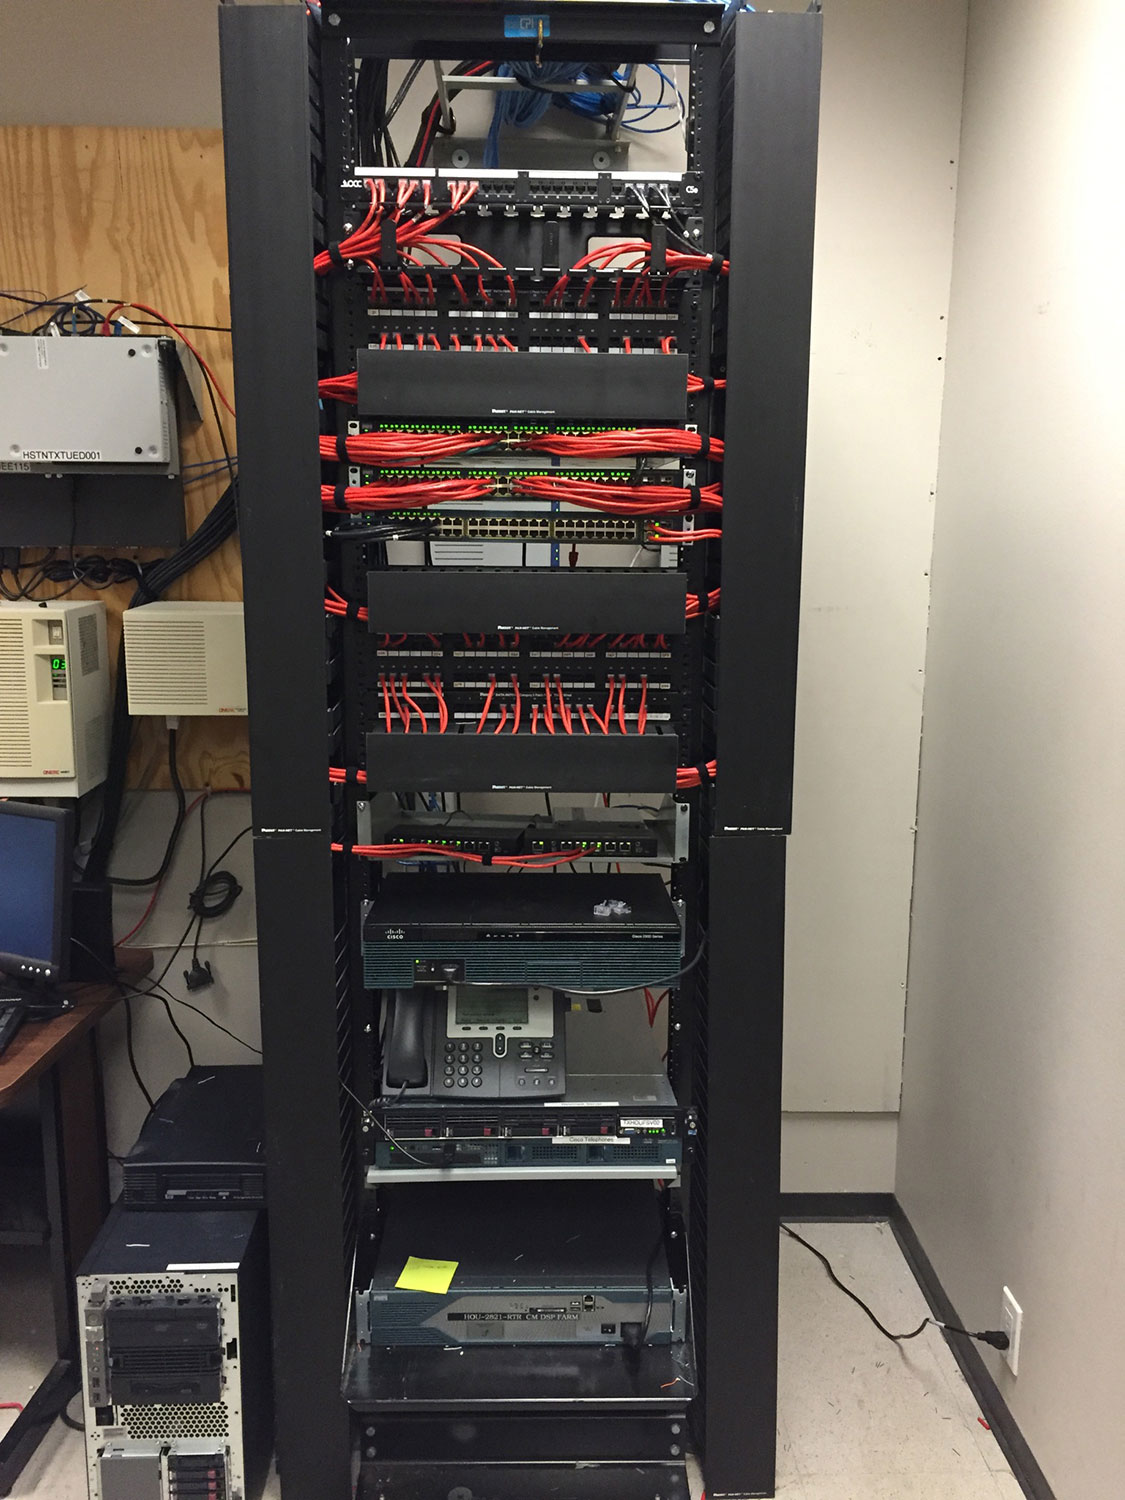 tall electrical unit with red wires